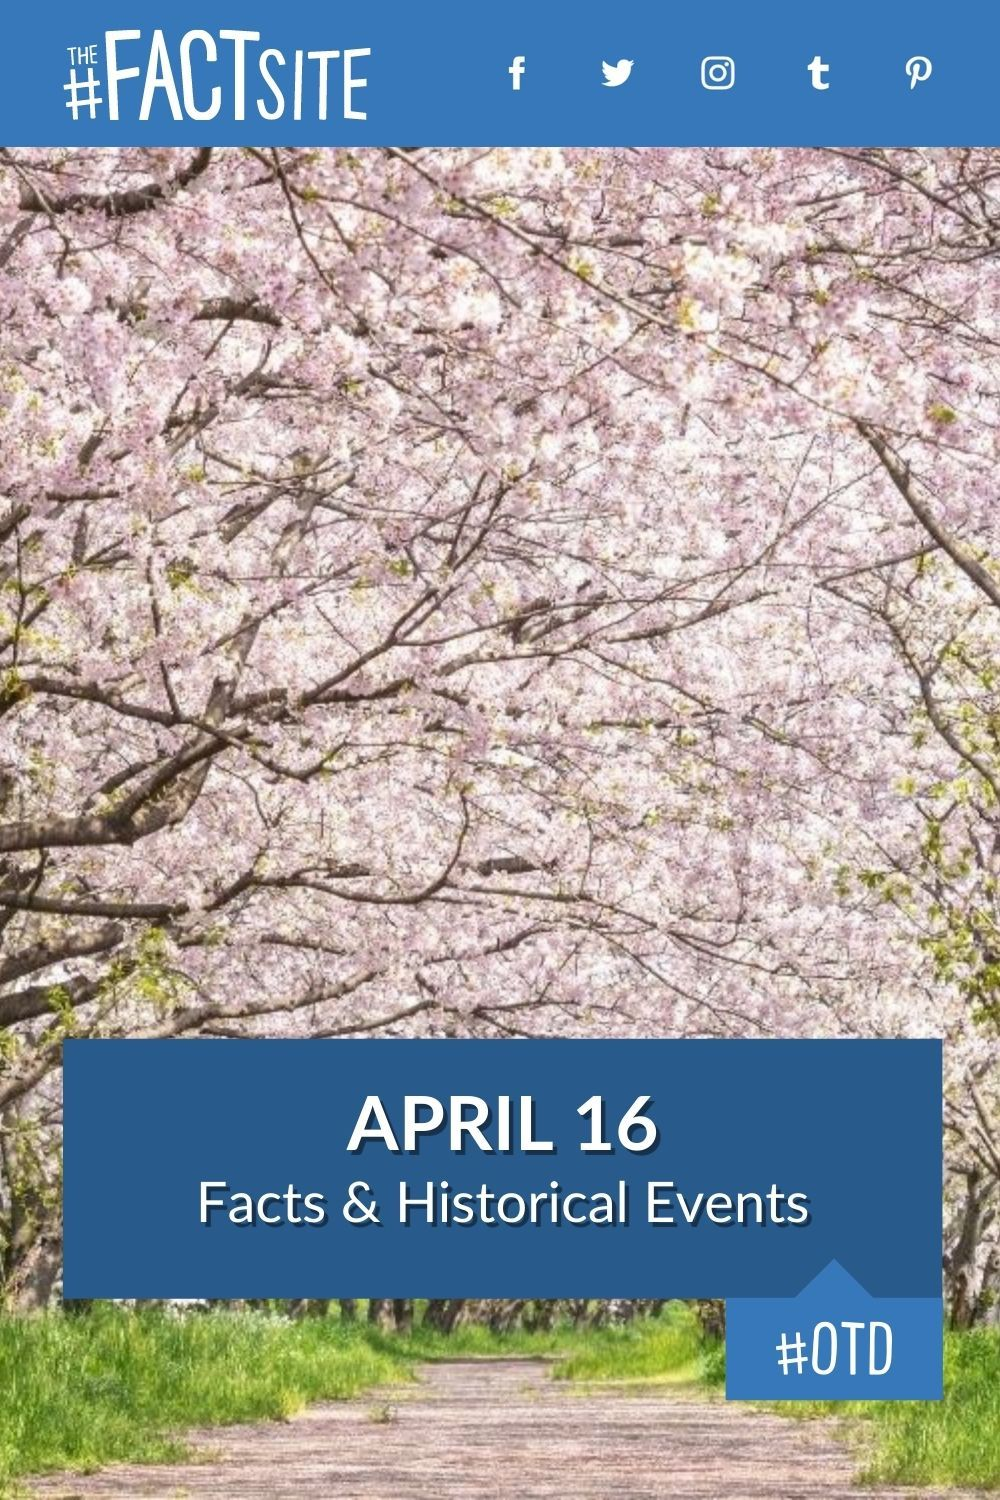 Facts & Historic Events That Happened on April 16